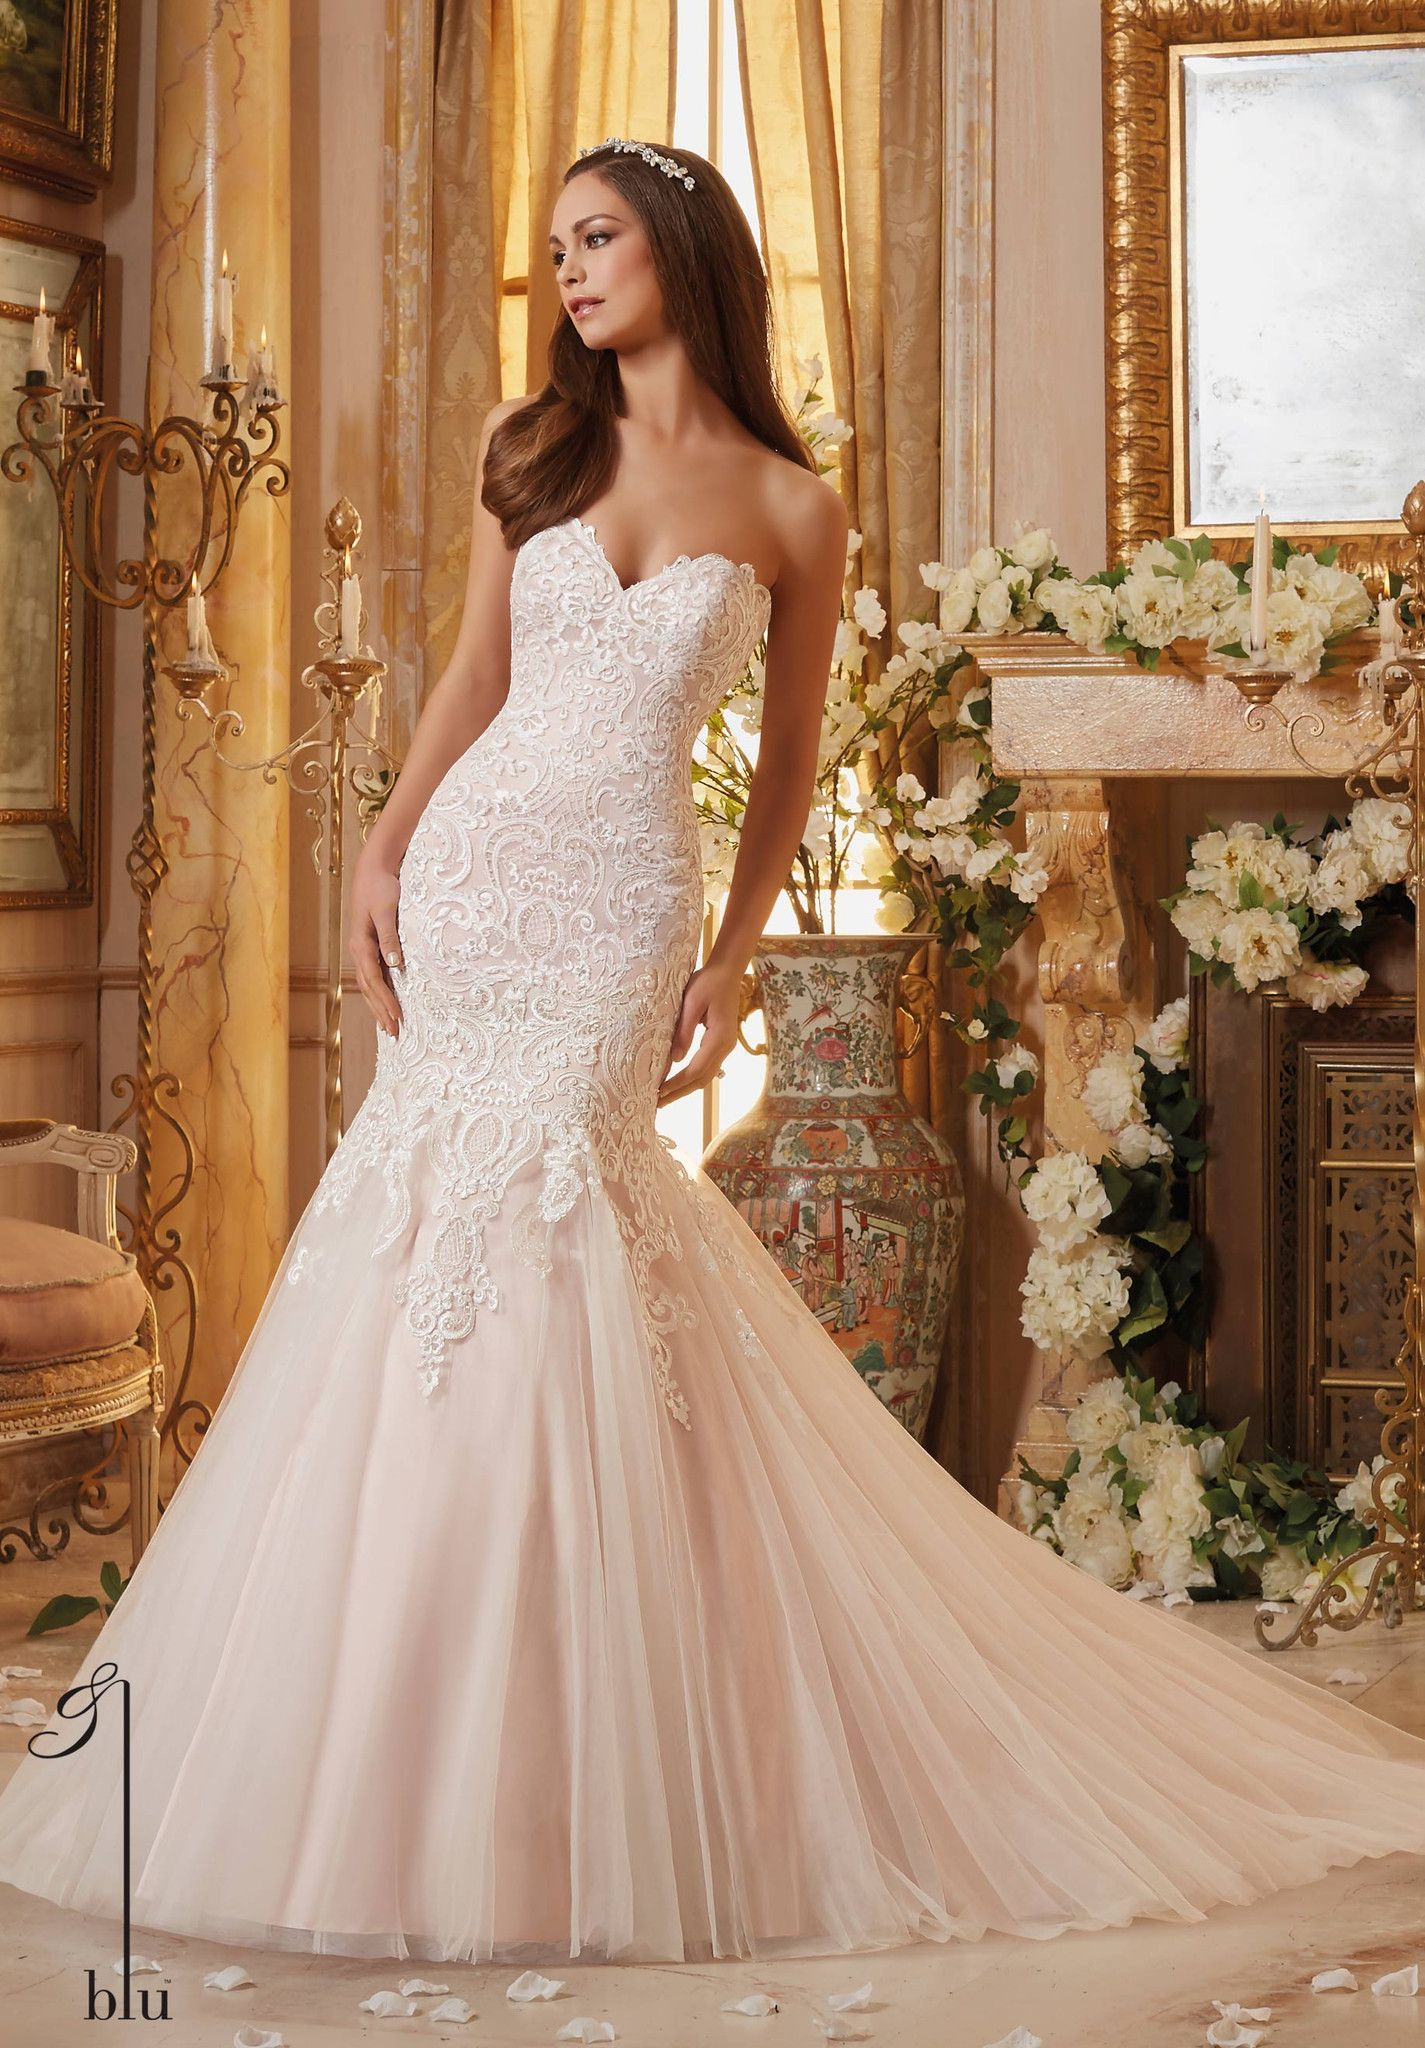 7dd1b58ddf01 Wedding Gown 5461VINTAGE EMBROIDERY ON SOFT NETColors Available: White,  Ivory, Ivory/Blush